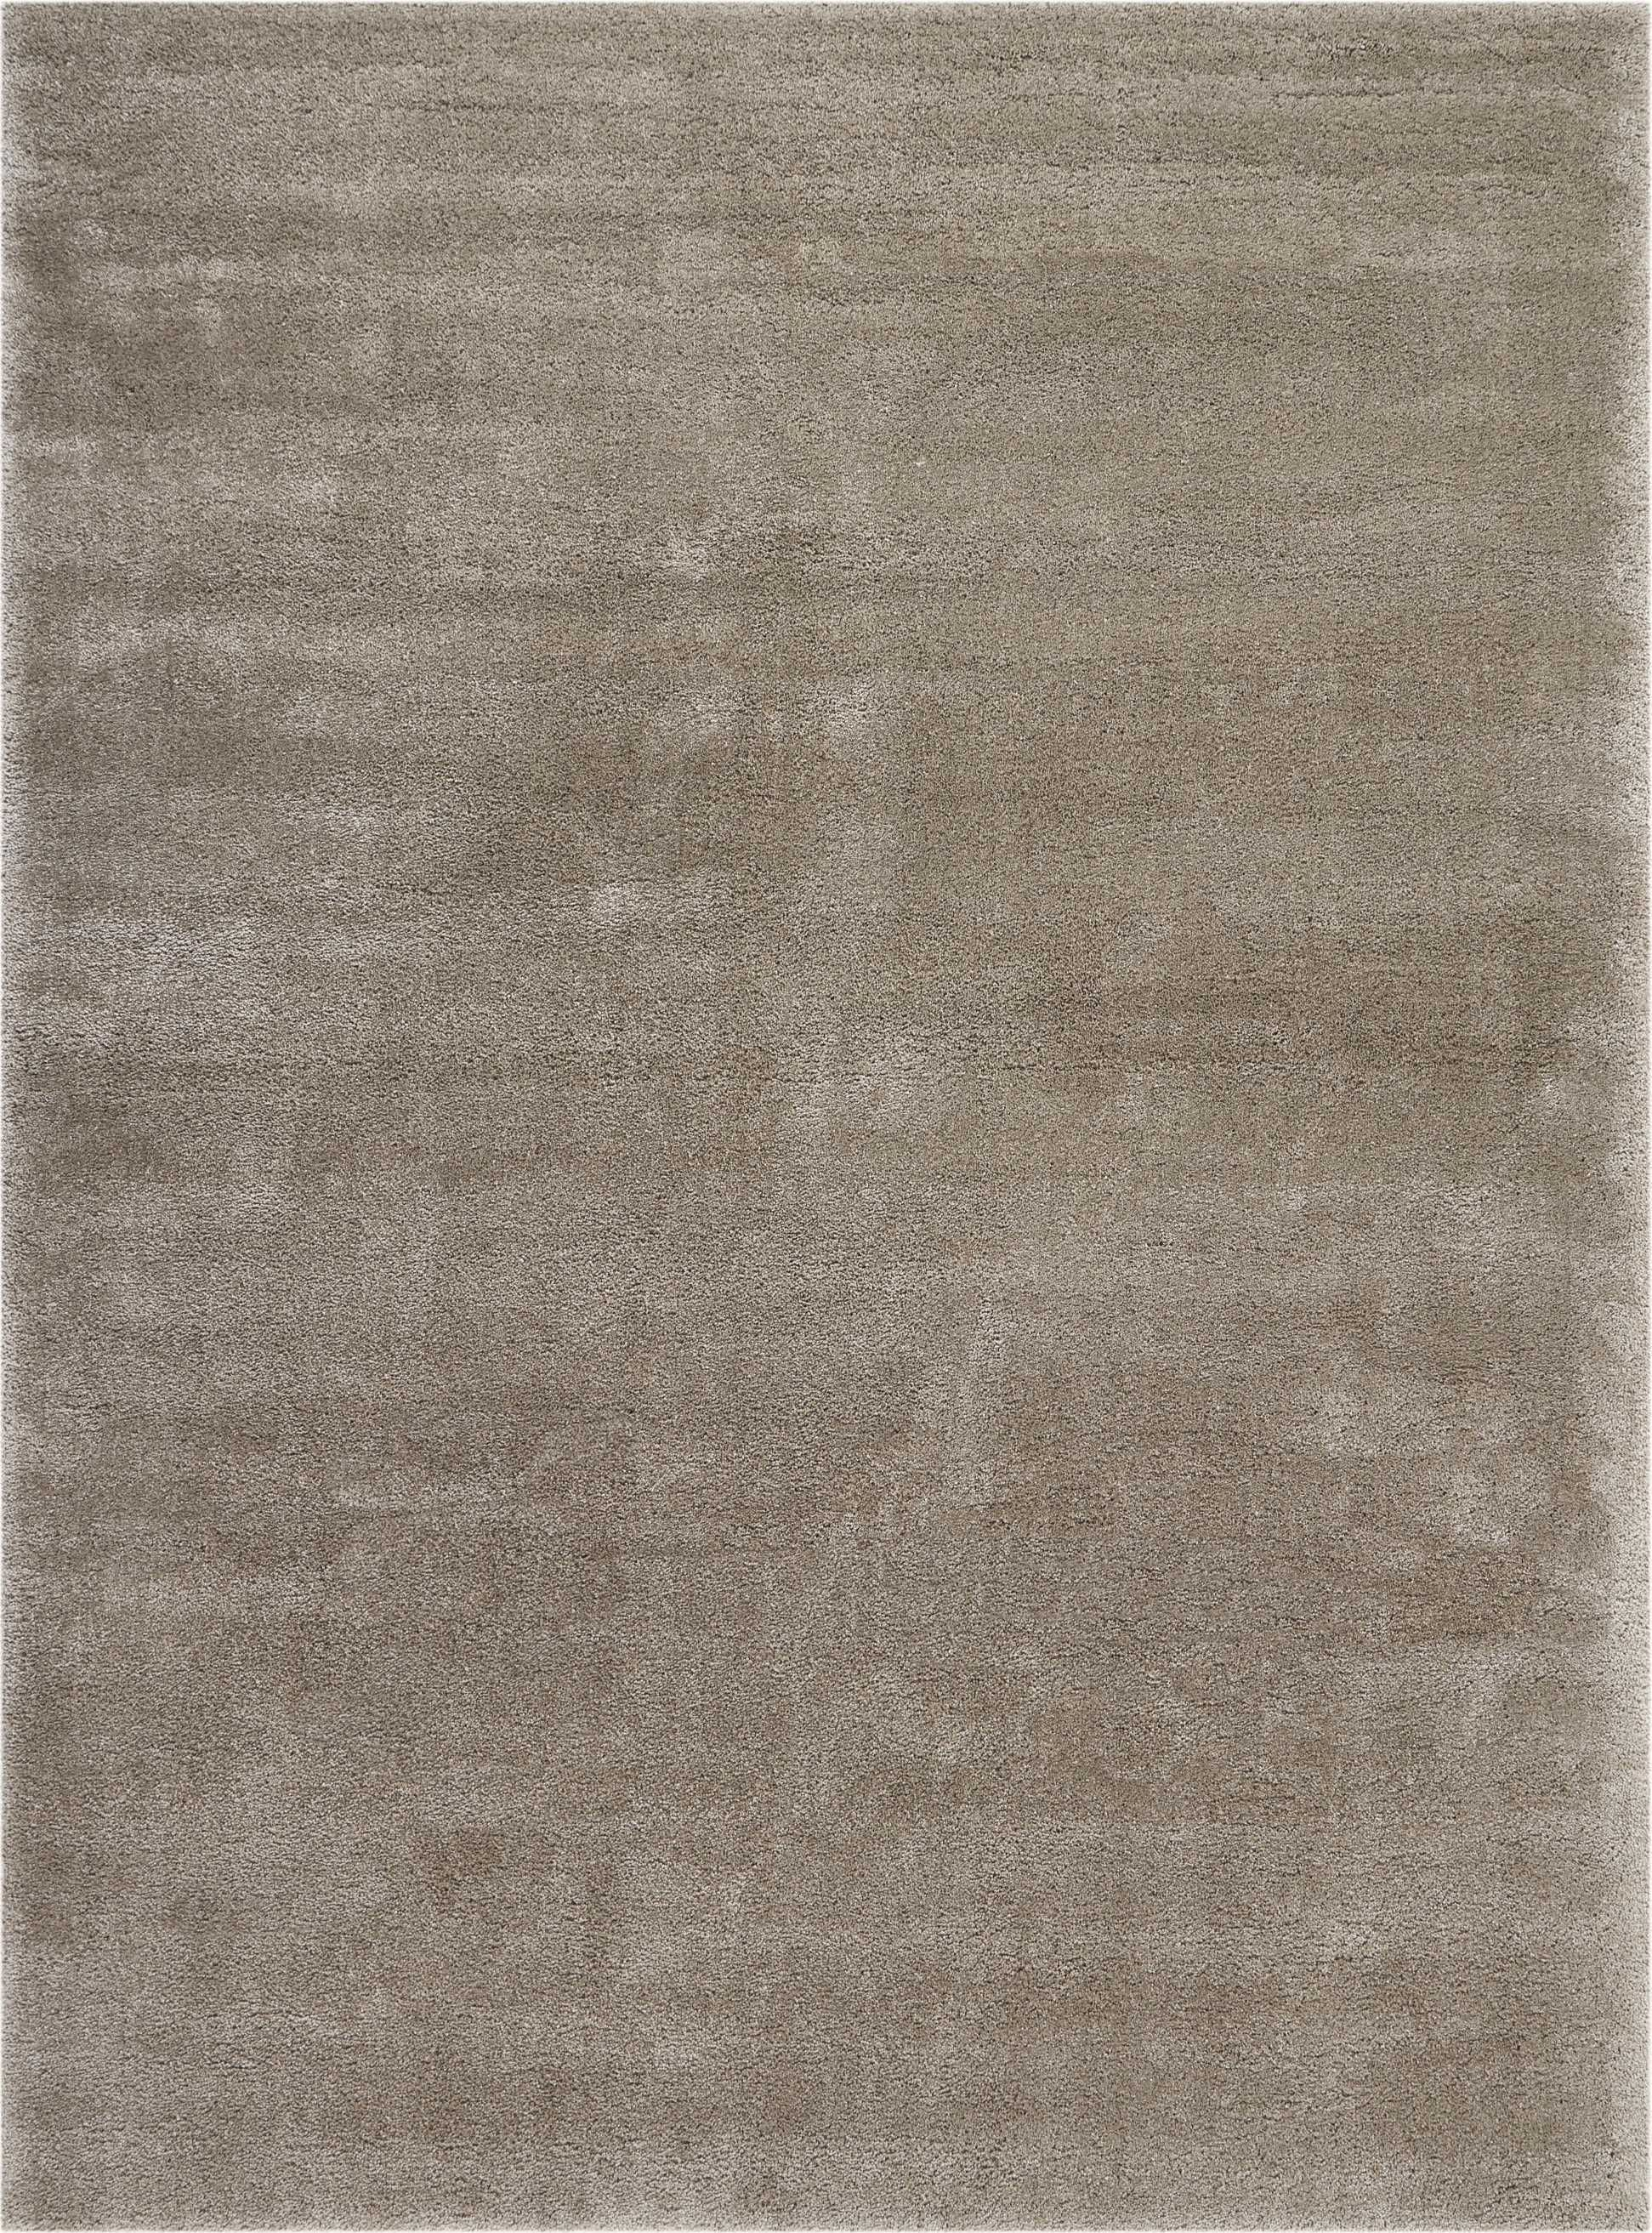 CK700 Silver This Greenpoint area rug by Calvin Klein